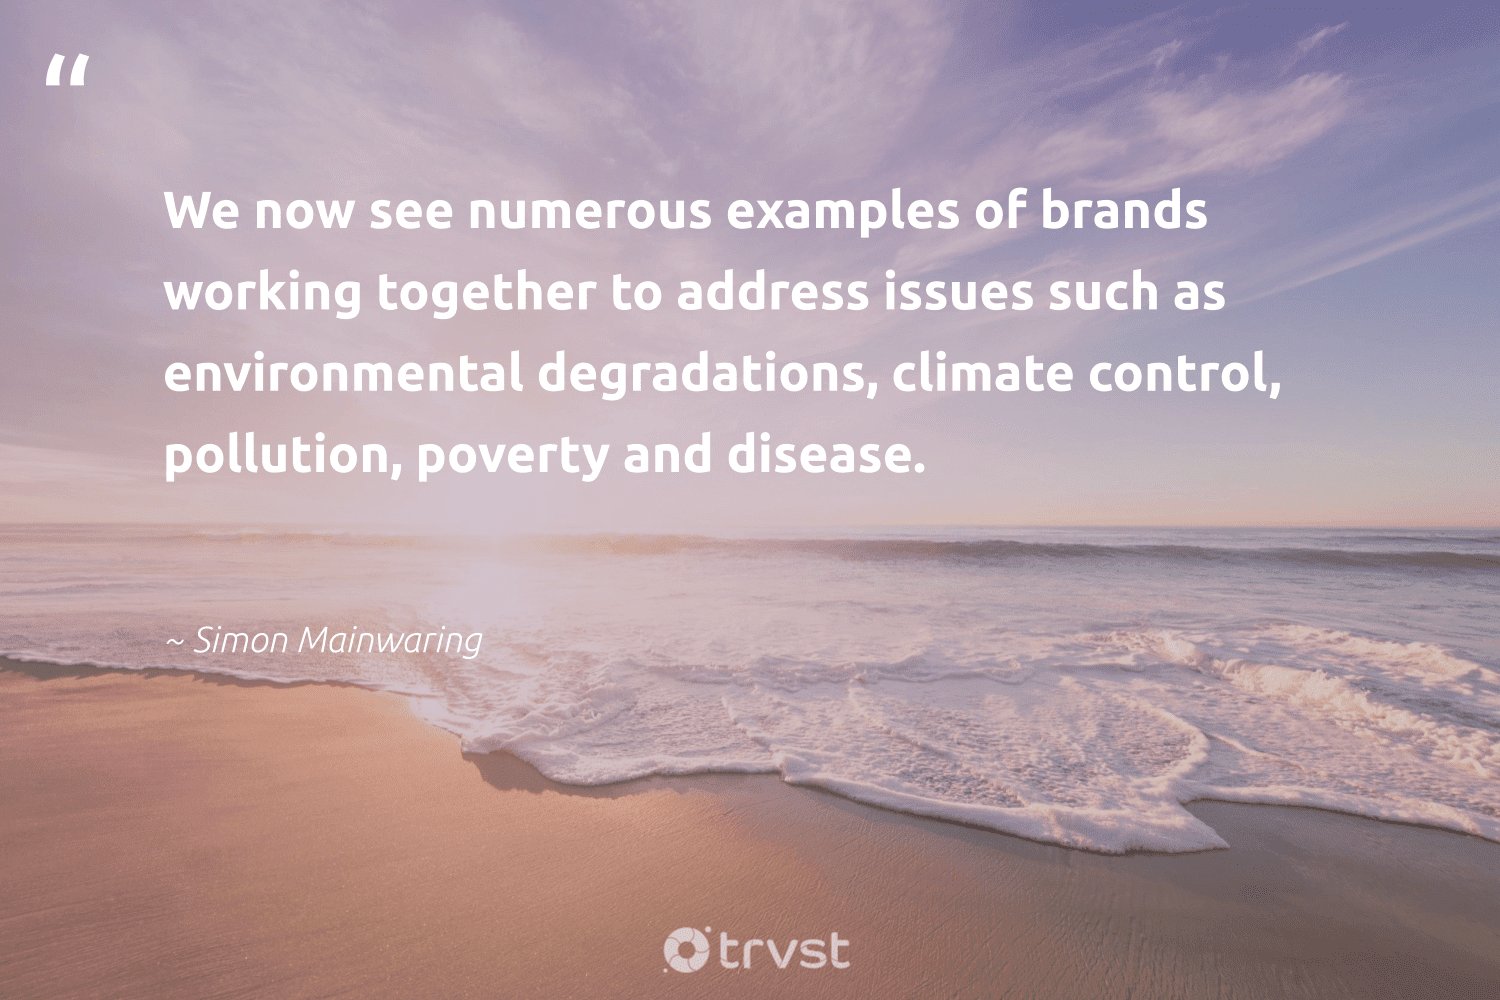 """""""We now see numerous examples of brands working together to address issues such as environmental degradations, climate control, pollution, poverty and disease.""""  - Simon Mainwaring #trvst #quotes #environmental #pollution #climate #poverty #workingtogether #pollute #sharedresponsibility #naturelovers #collectiveaction #spill"""